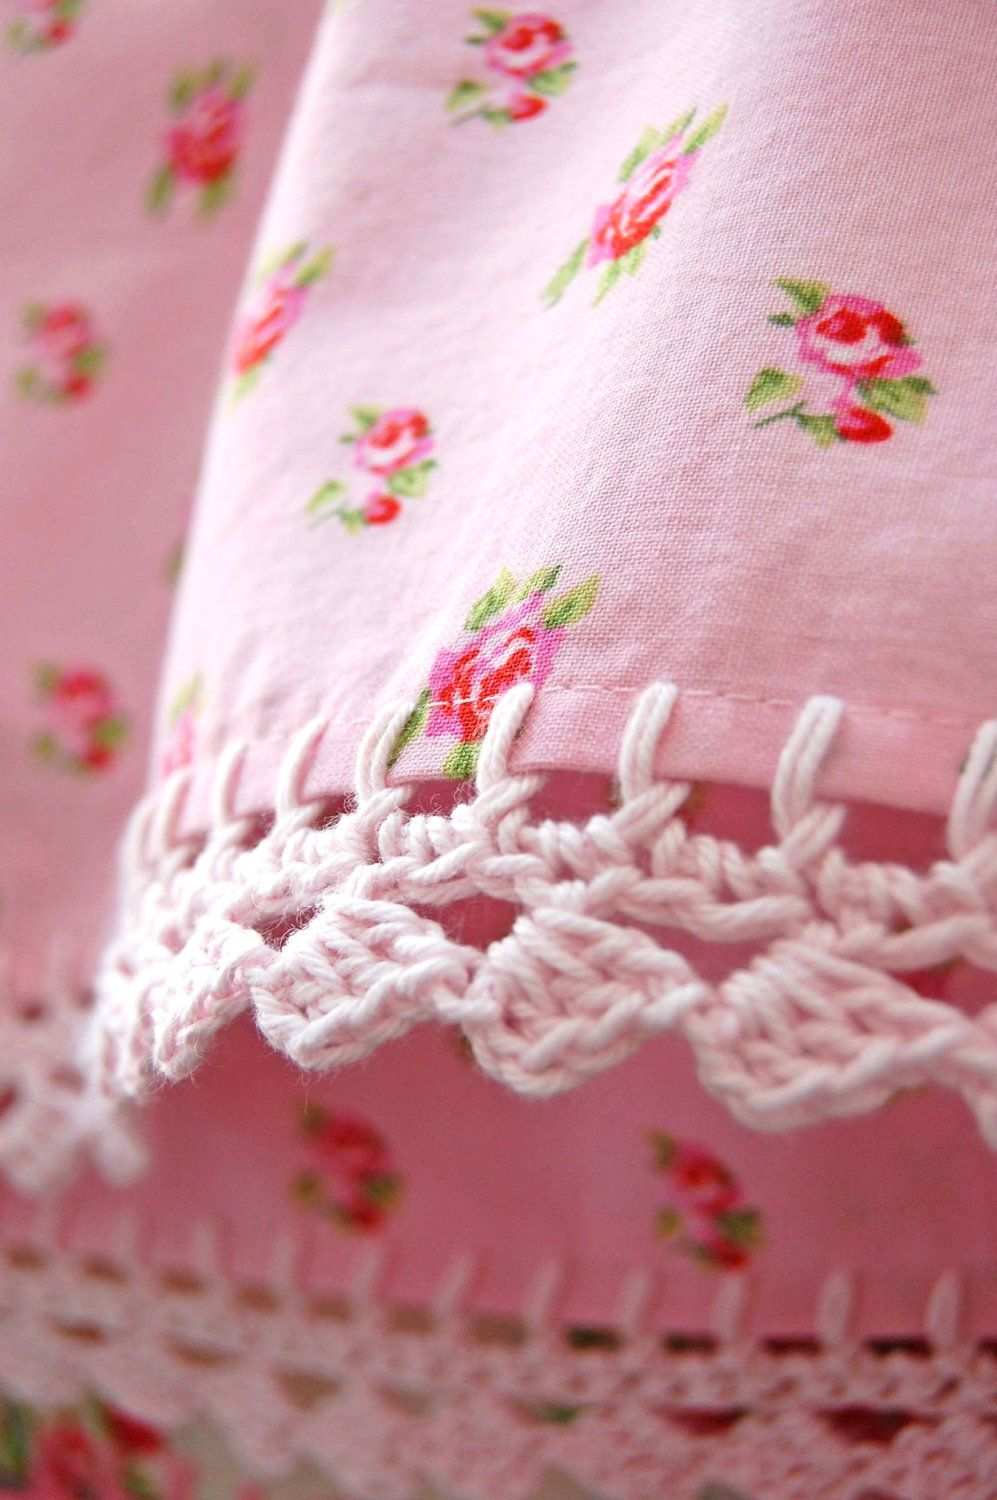 Pillowcase with crochet trim - Pretty in Pink--I want to learn to do this. & Inspiration Homemade edging sheet pillow case trim border ... pillowsntoast.com